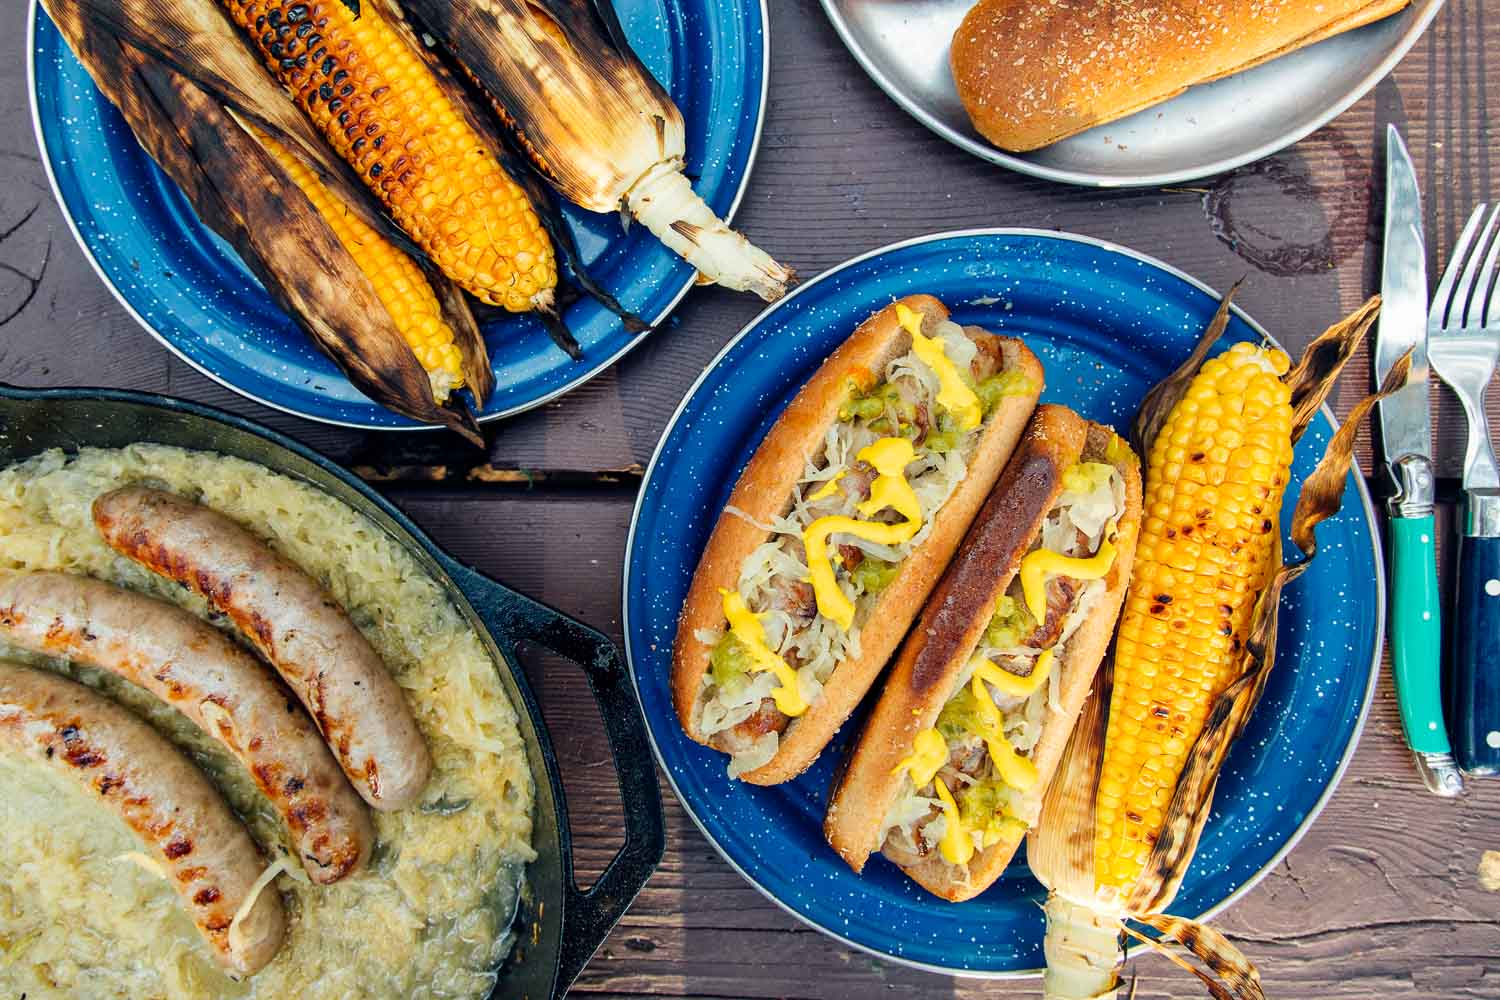 Overhead view of a plate with grilled beer brats, sauerkraut, and grilled corn